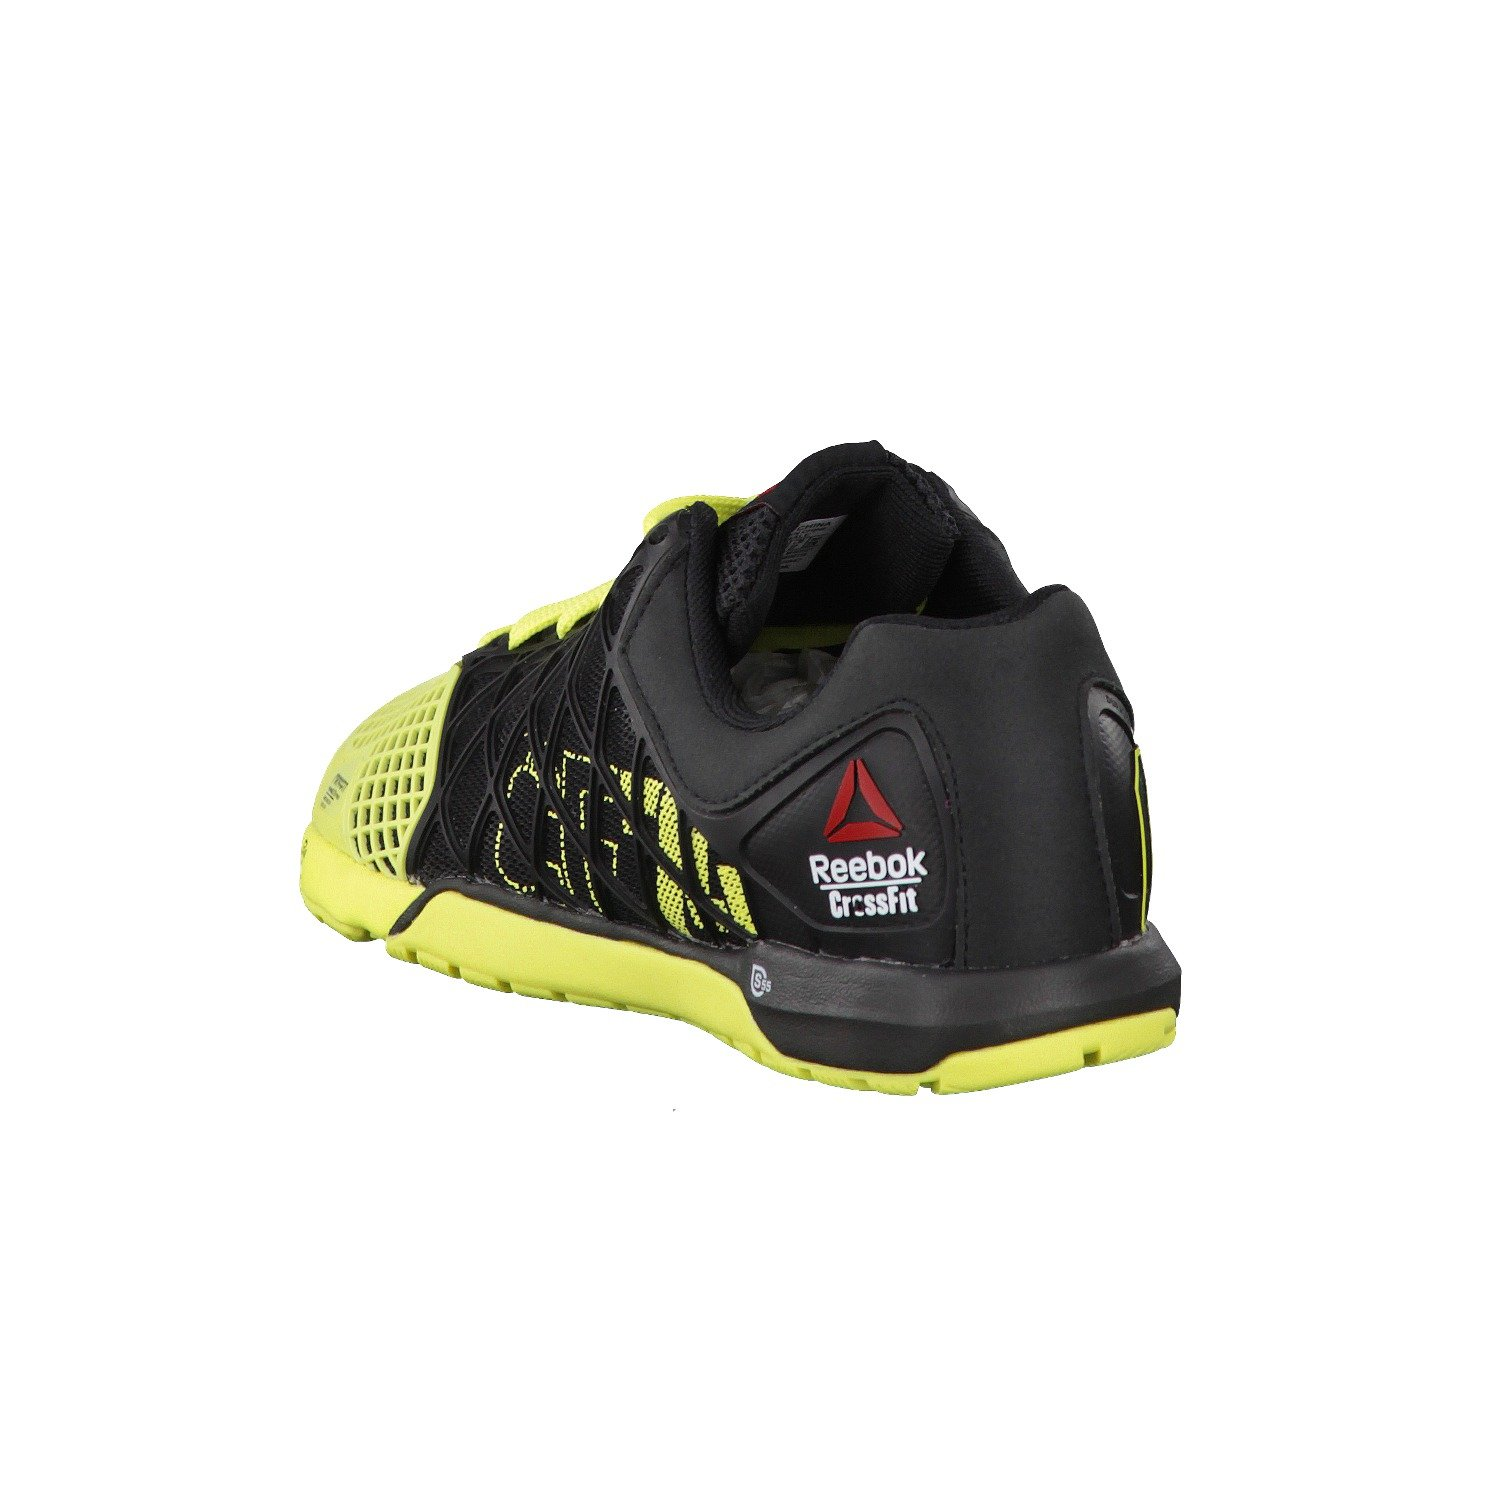 reebok crossfit europe shop online